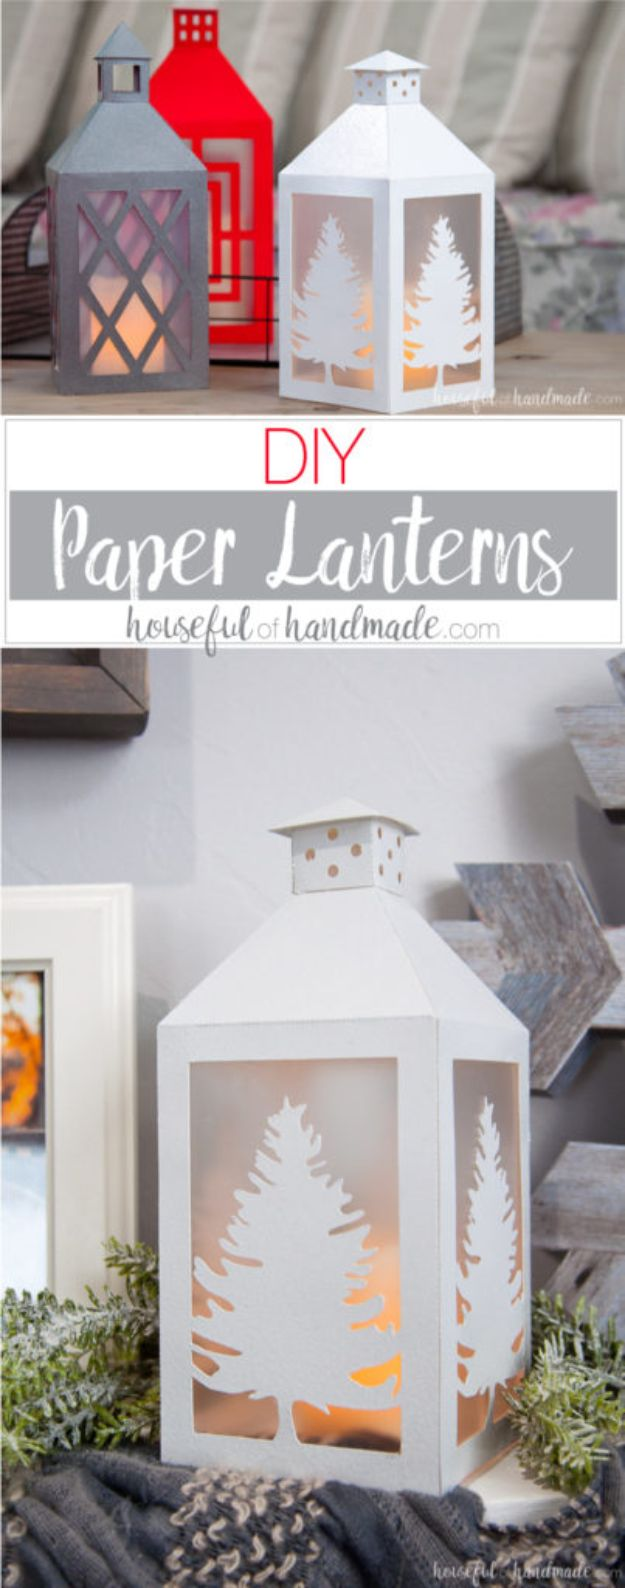 Paper Crafts DIY - DIY Paper Lanterns - Papercraft Tutorials and Easy Projects for Make for Decoration and Gift IDeas - Origami, Paper Flowers, Heart Decoration, Scrapbook Notions, Wall Art, Christmas Cards, Step by Step Tutorials for Crafts Made From Papers  #crafts